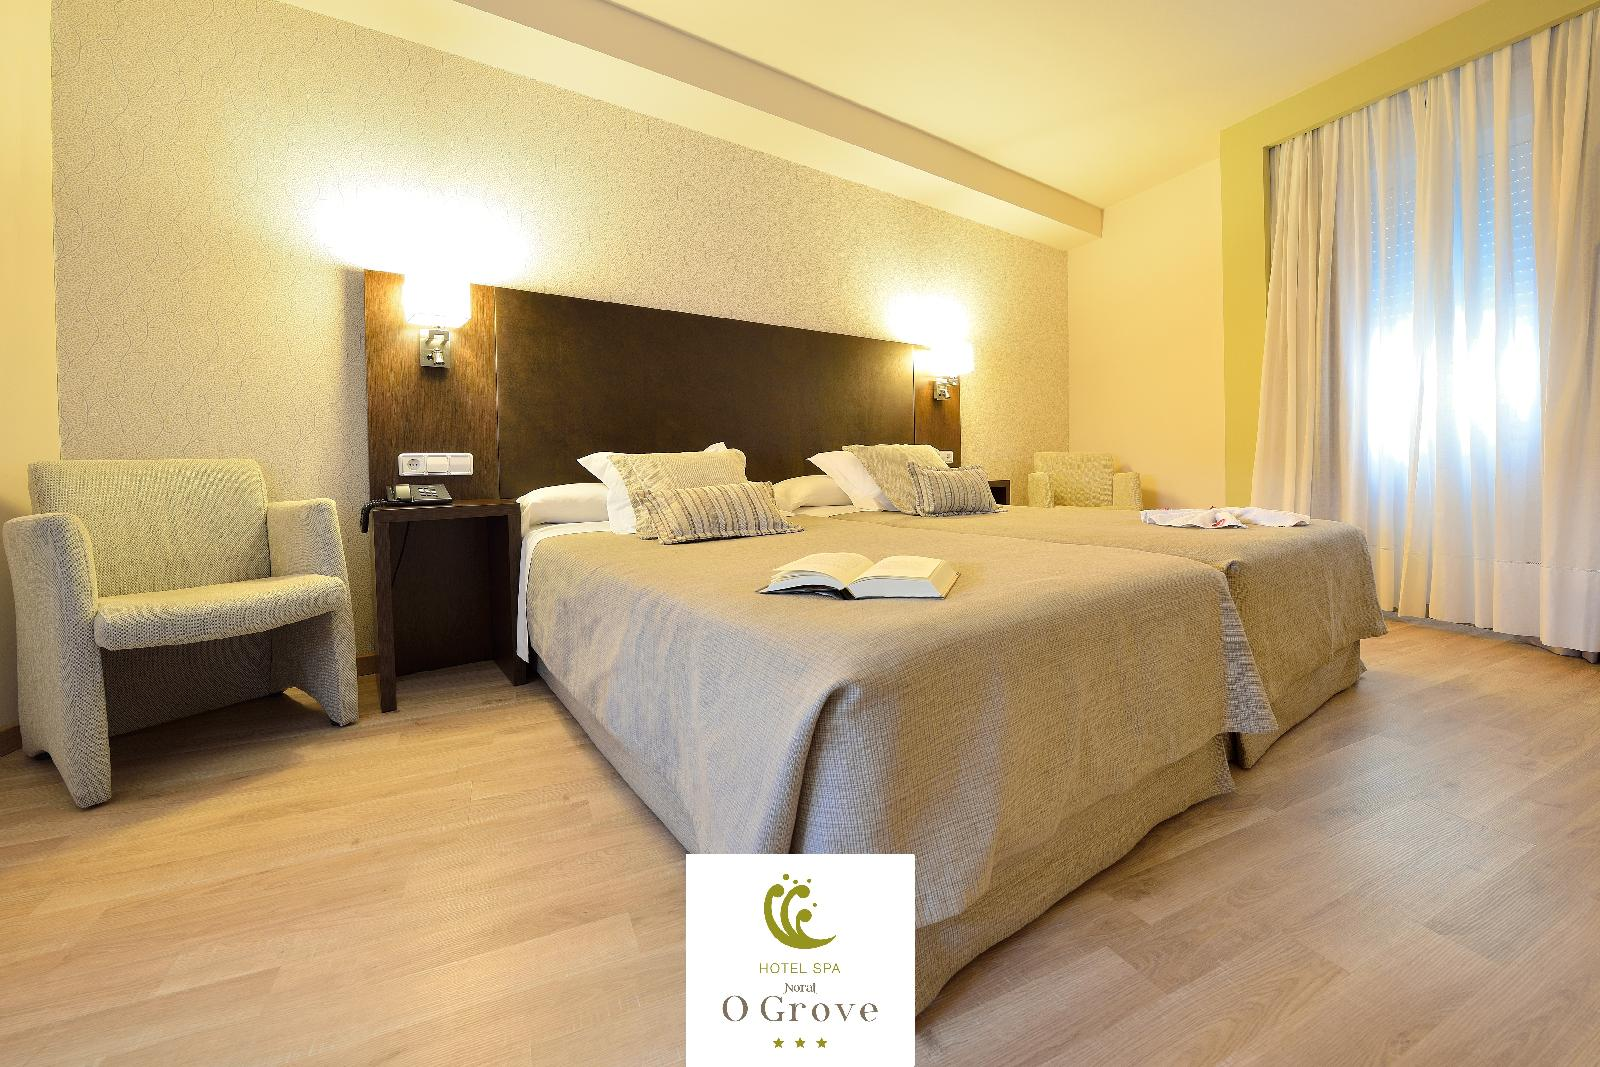 1. Hotel Spa Norat O Grove 3* Superior